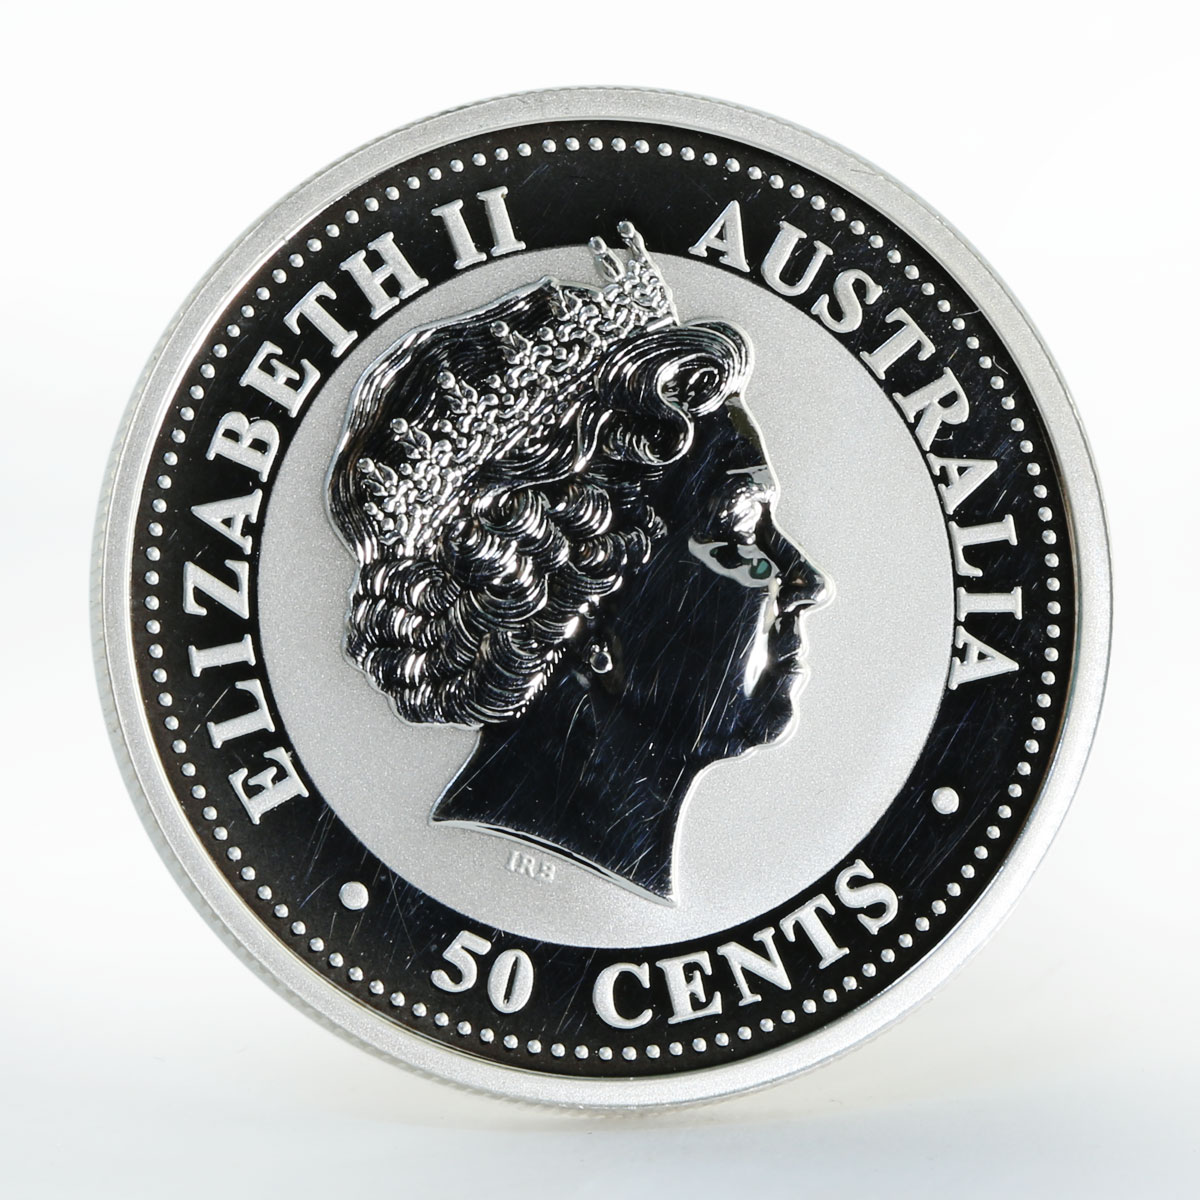 Australia 50 Cents Year of the Goat Lunar Series I 1/2 Oz Silver coin 2003